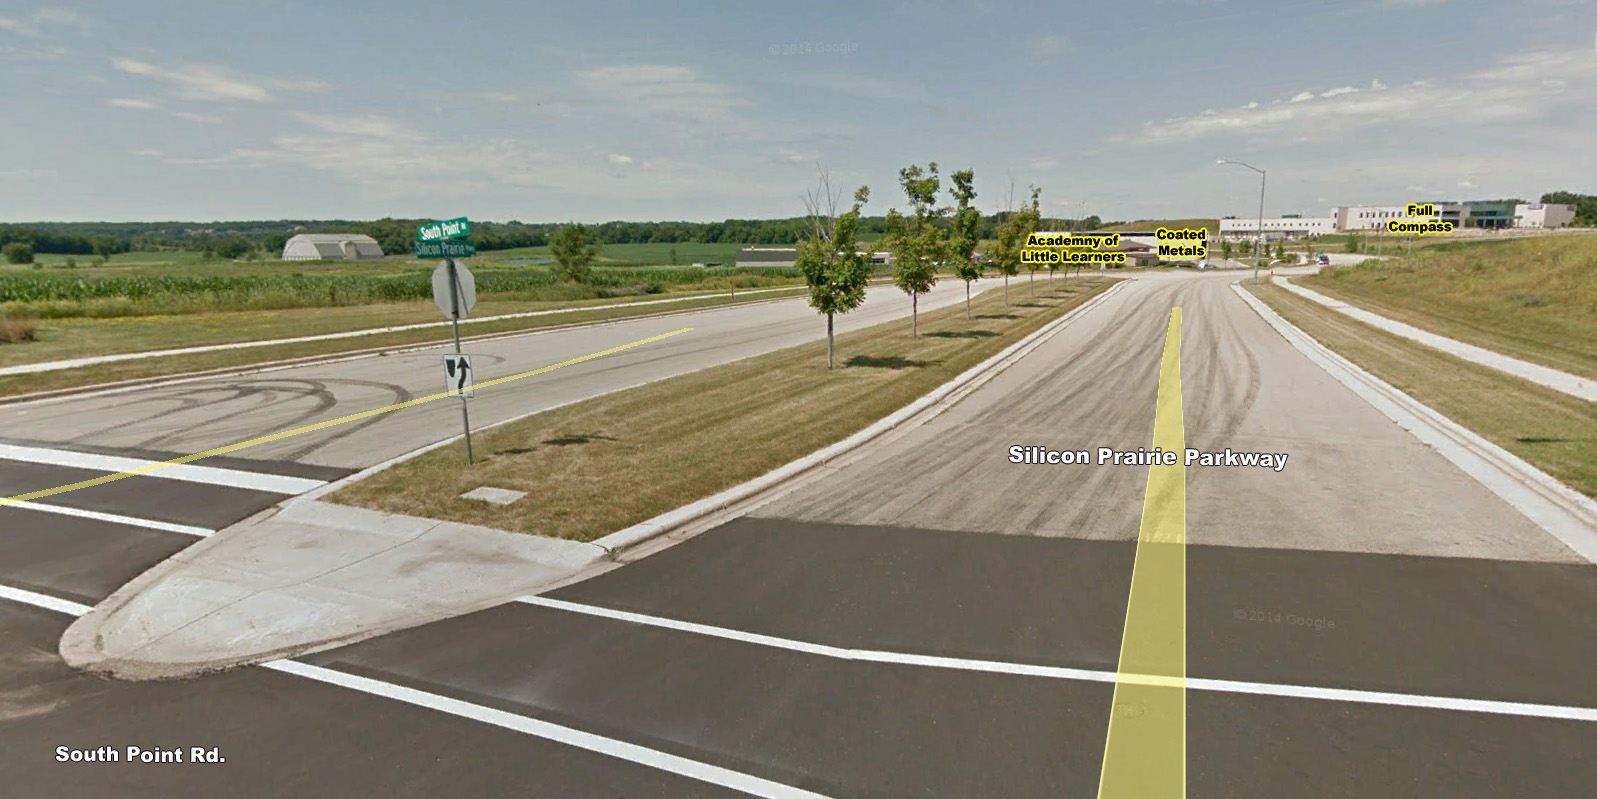 Silicon Prairie Parkway & South Point Road